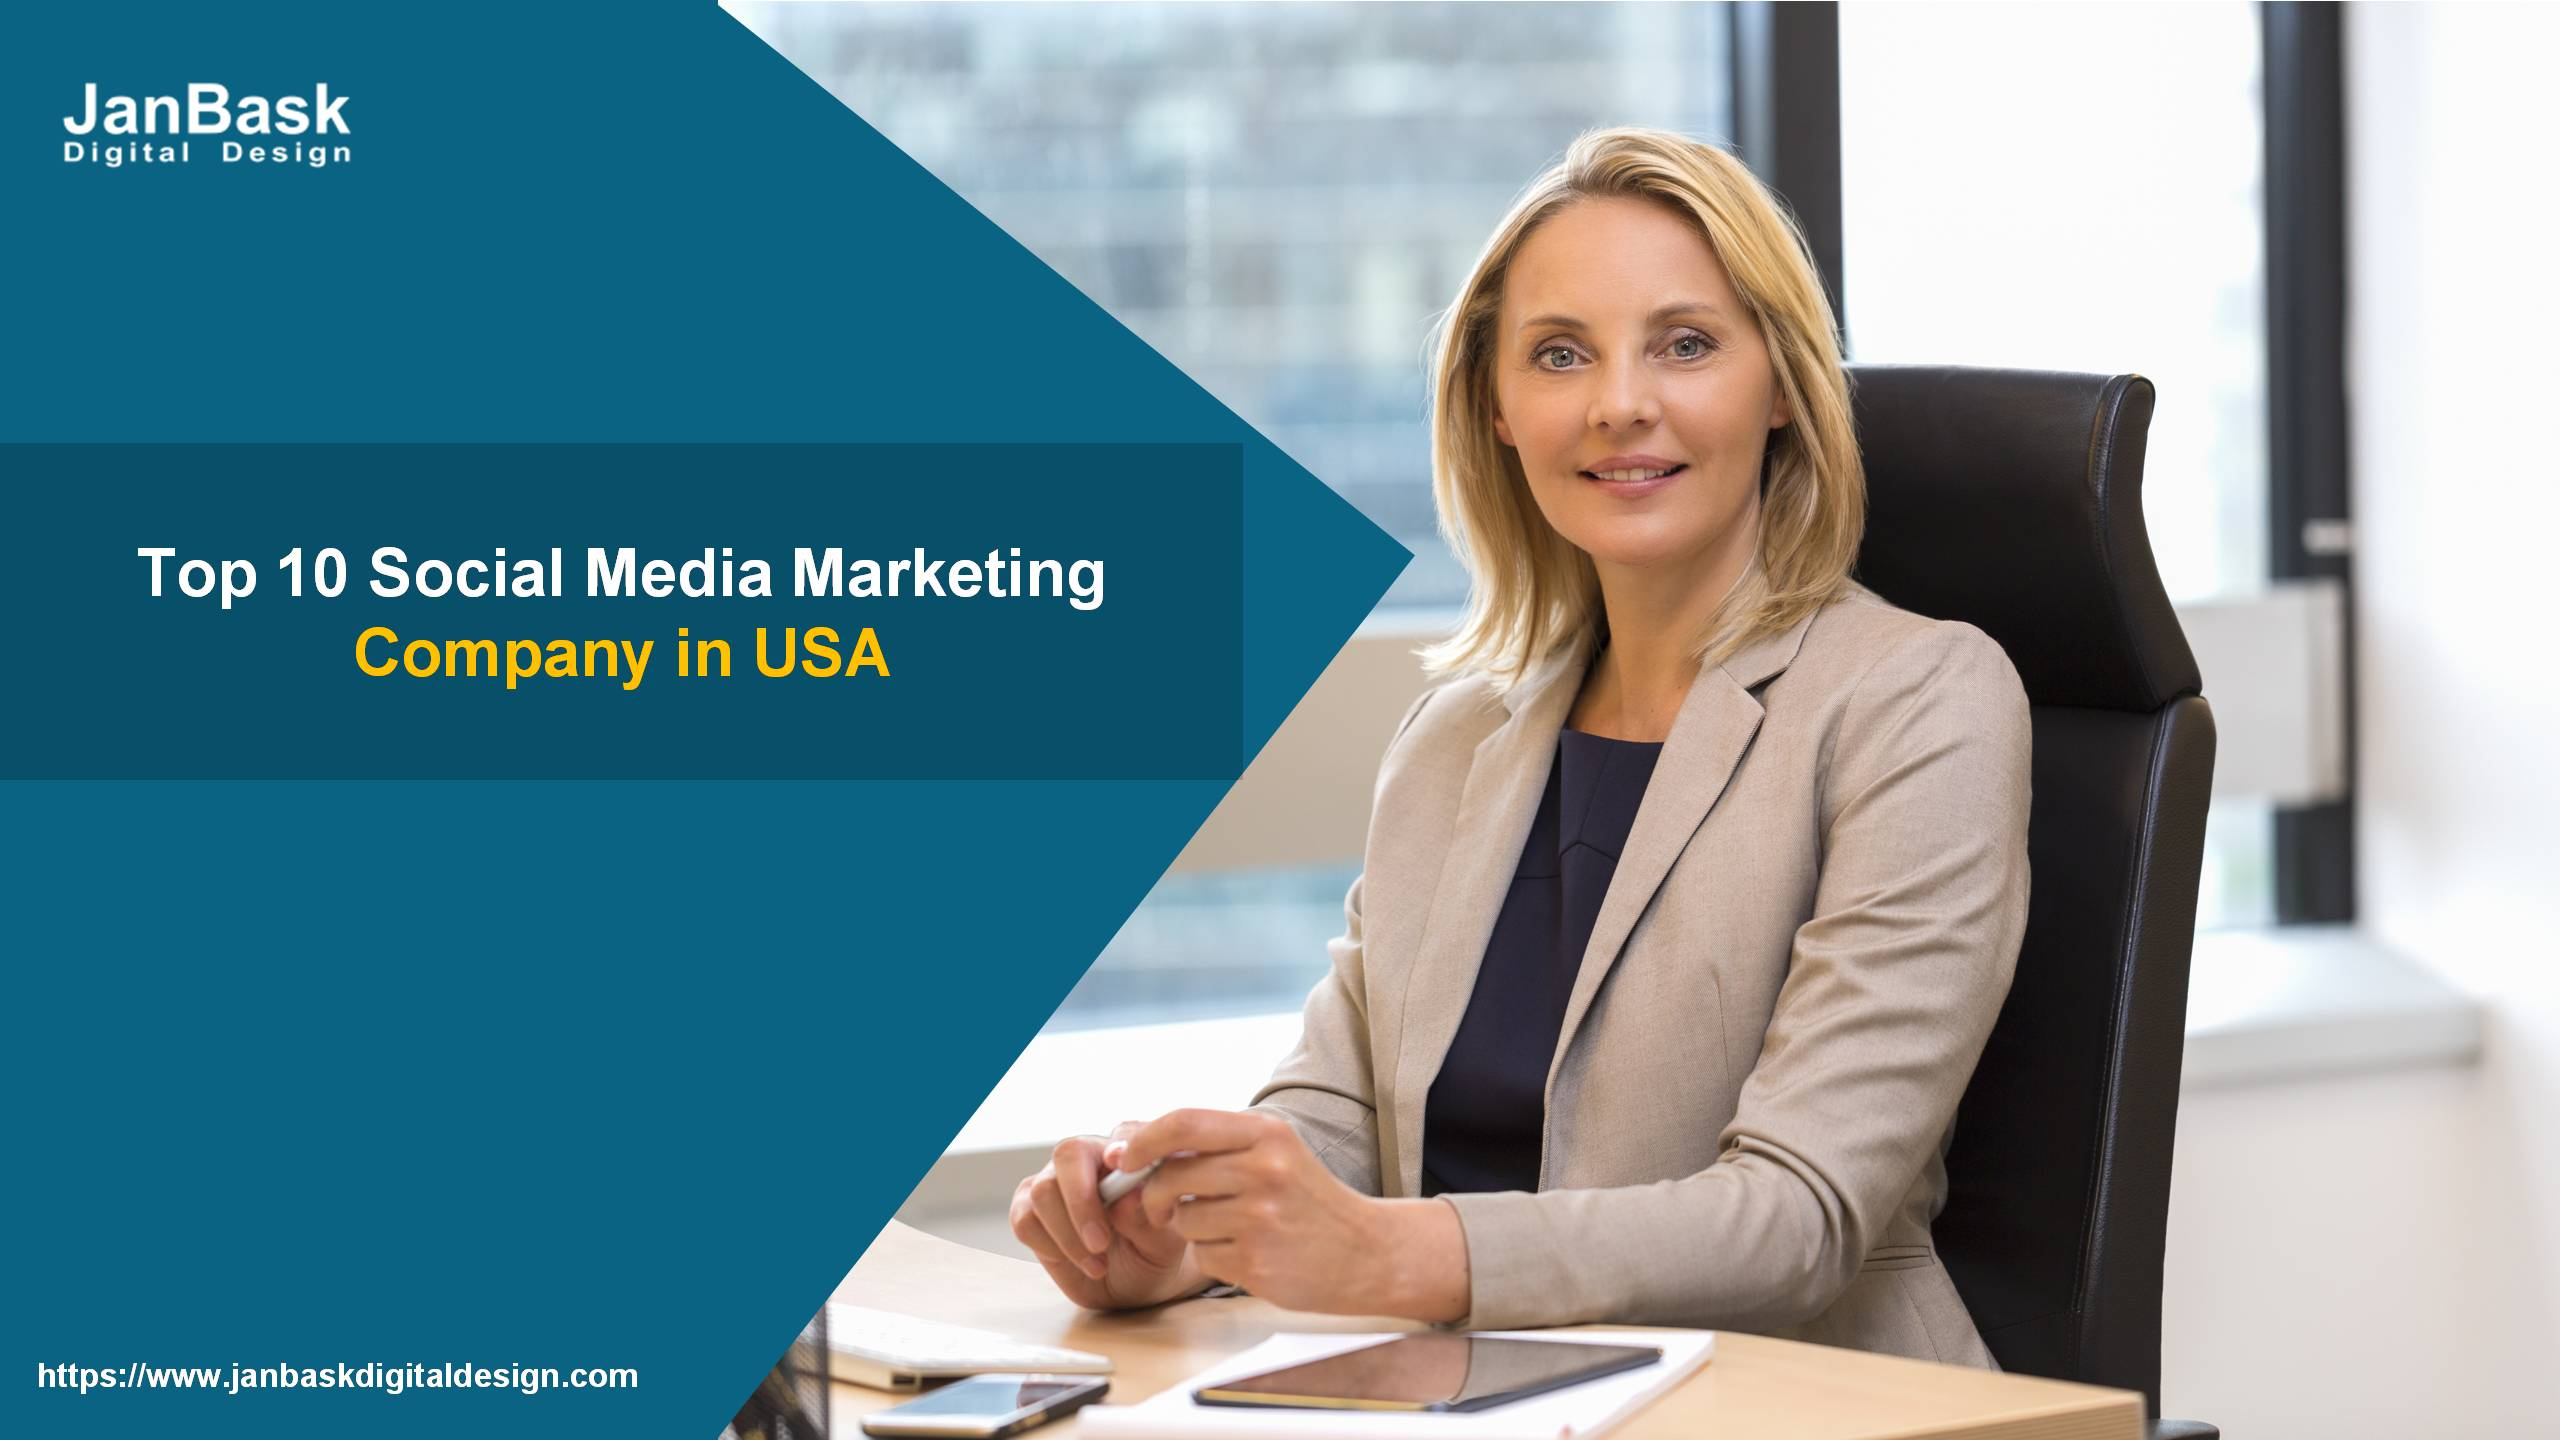 Top 10 Social Media Marketing Company in USA - Janbask Digital